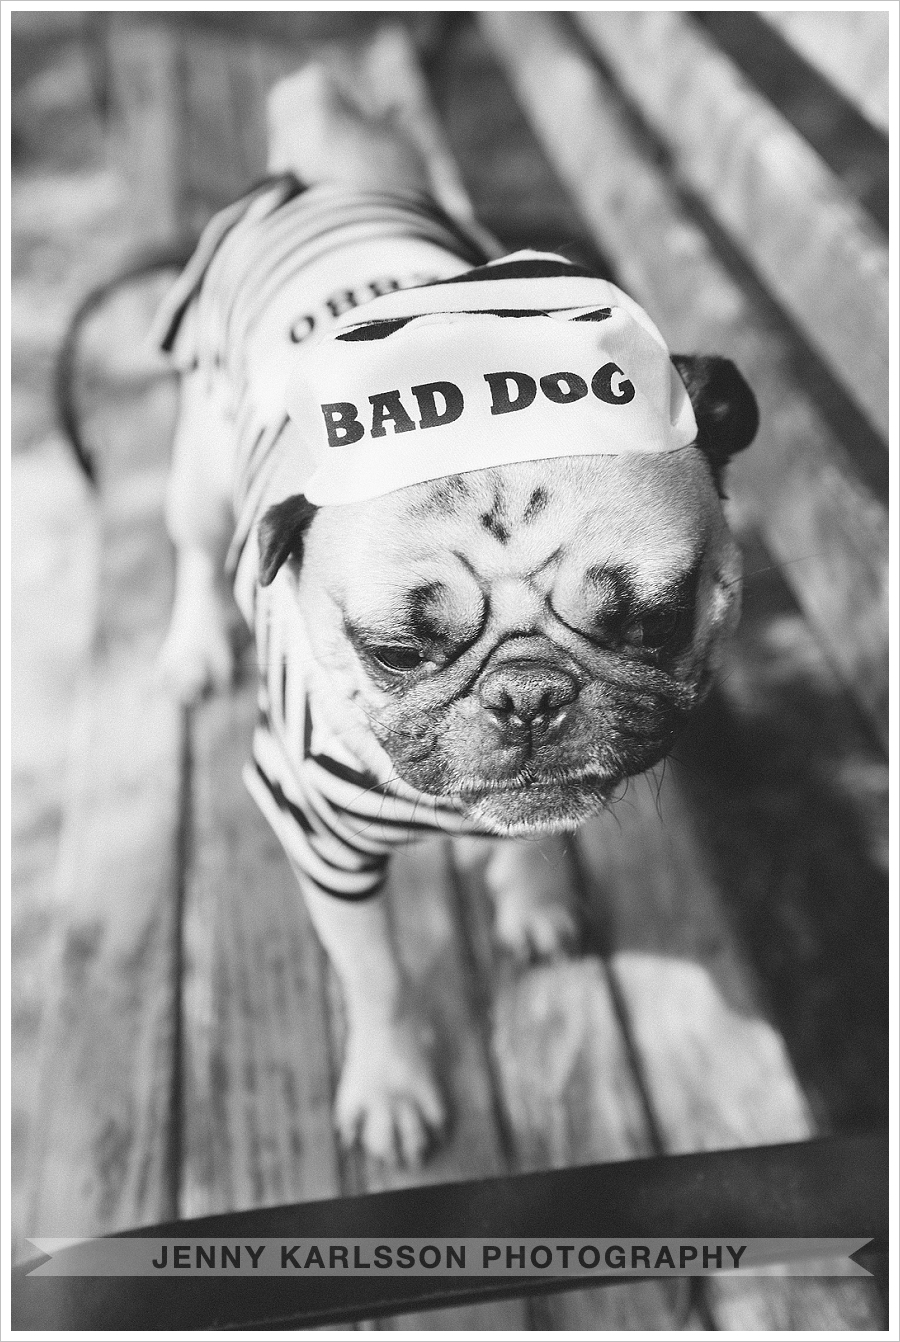 Pug in bad dog outfit - Pittsburgh dog photographer